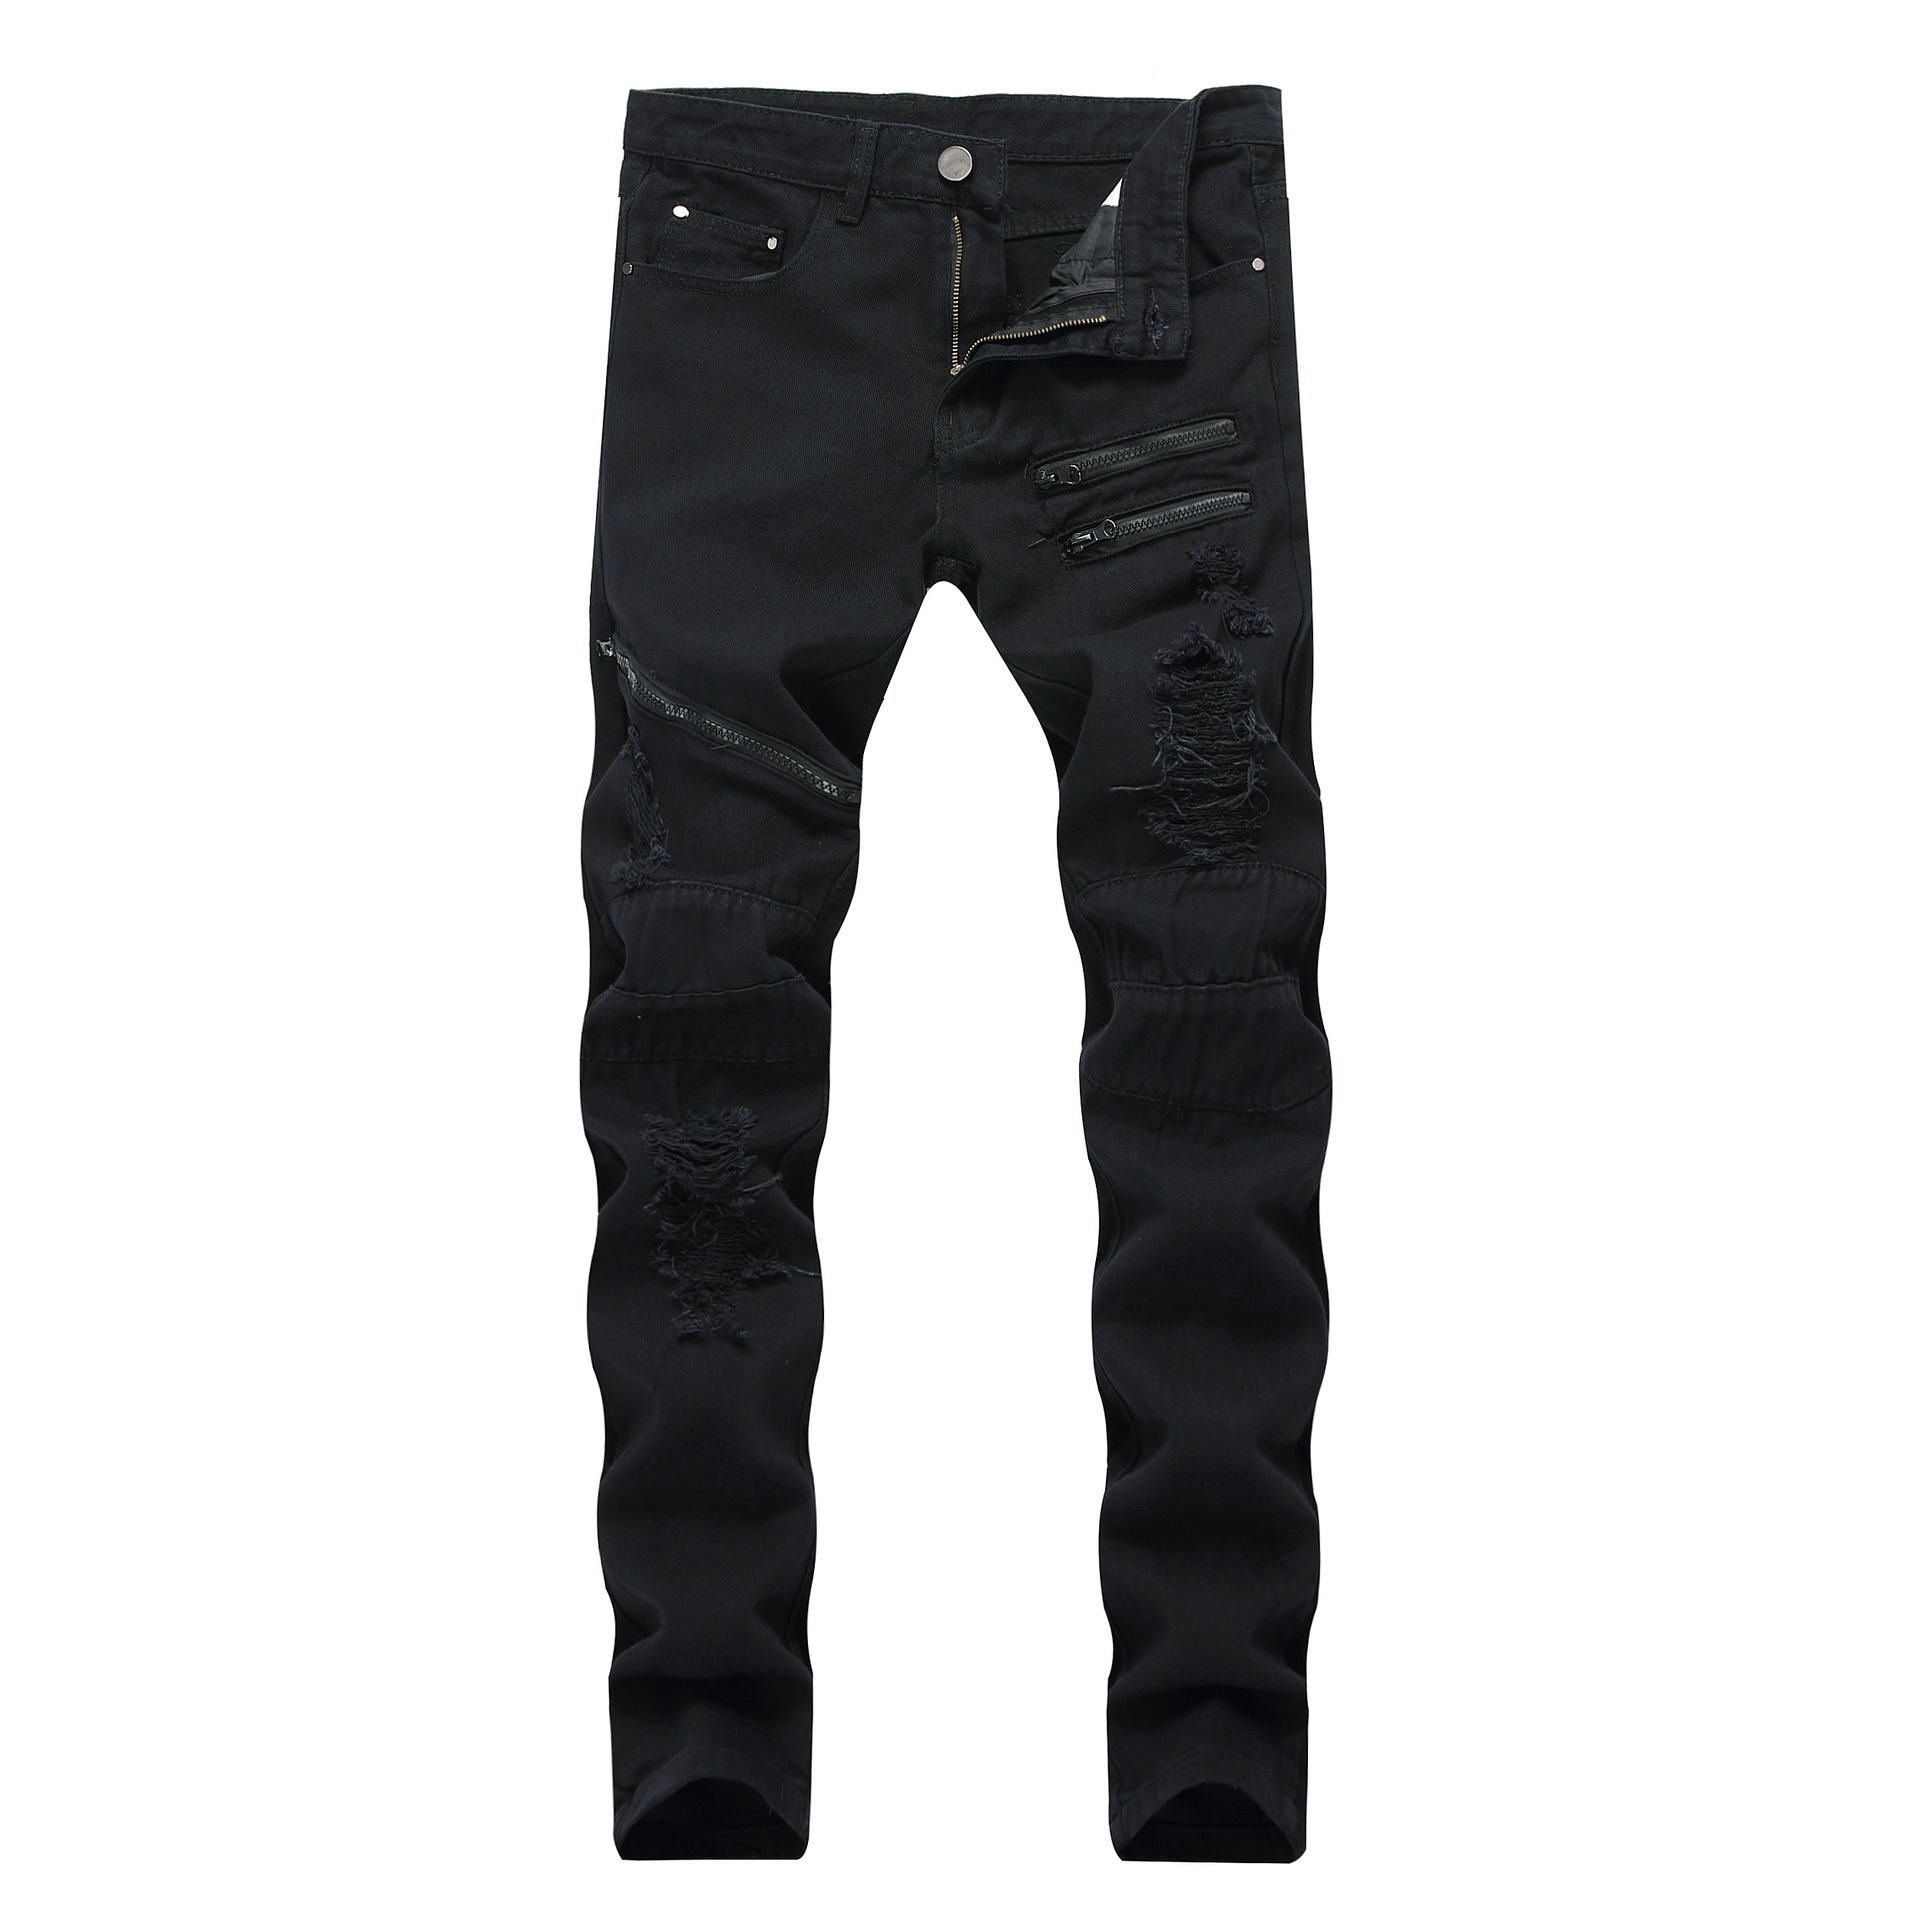 Cross Border Foreign Trade Men Slim Fit Zipper Black And White With Pattern Casual Jeans Amazon Supply America Trousers